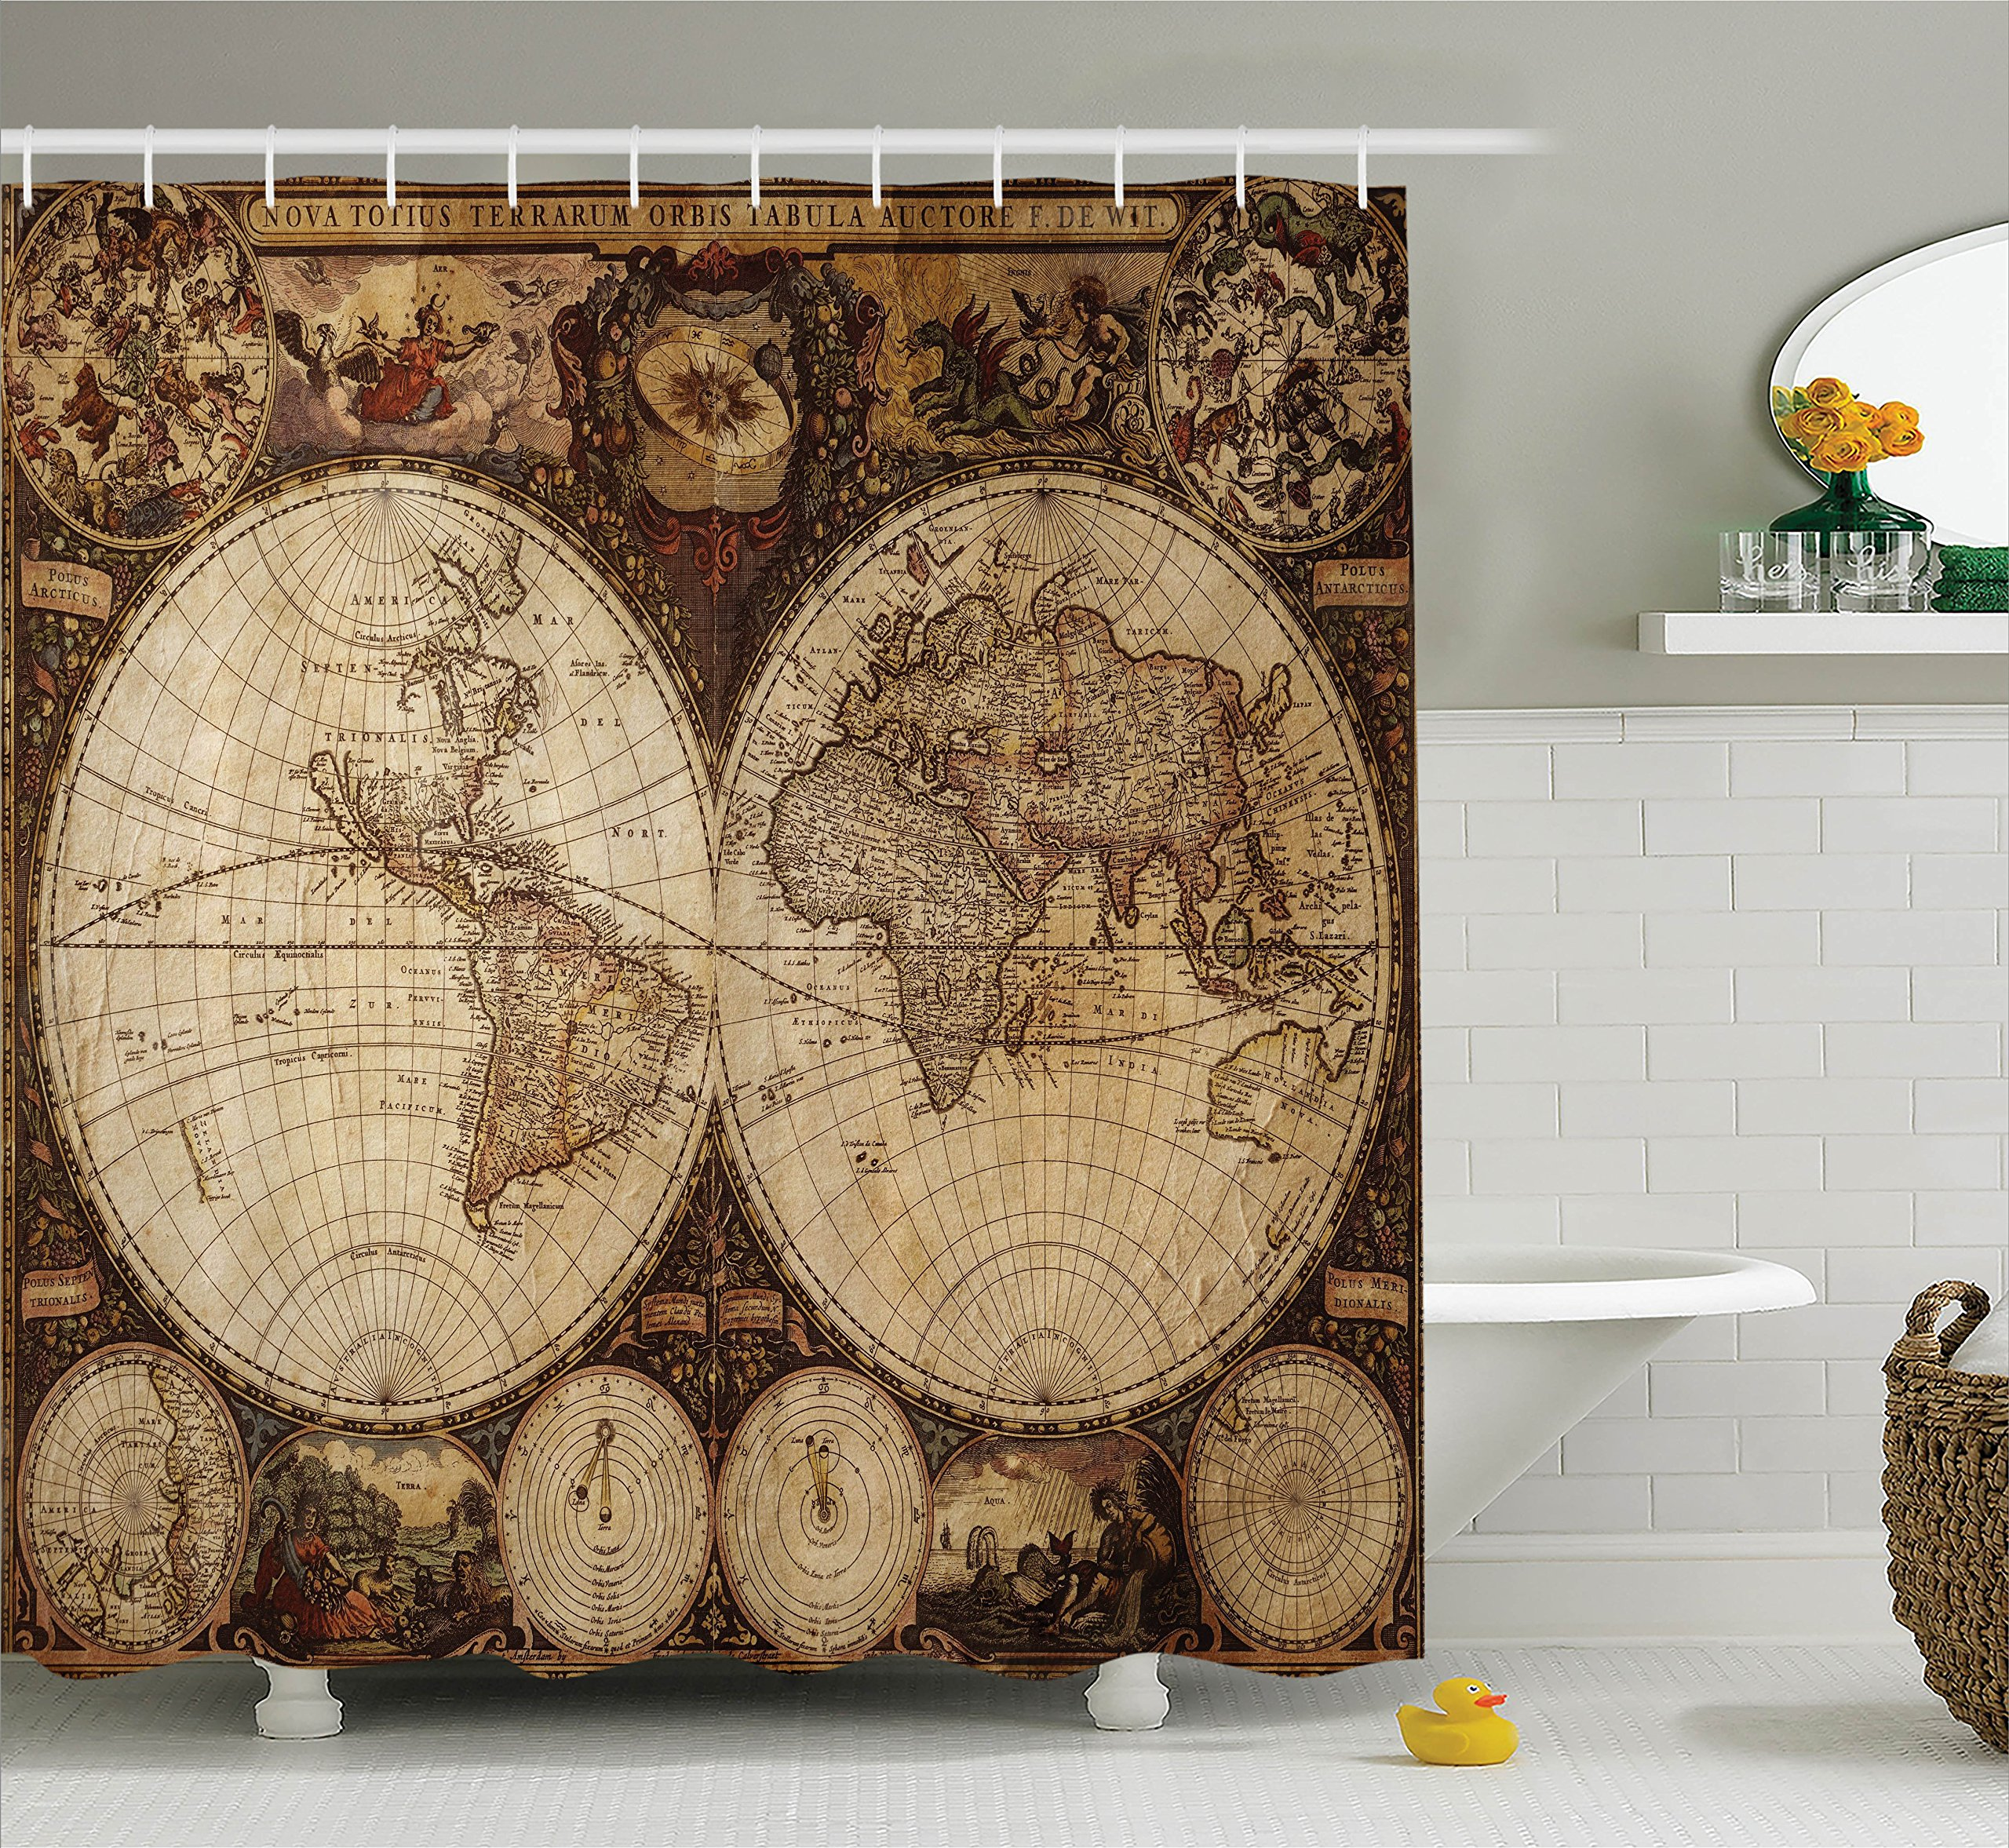 Old world map accessories amazon wanderlust decor shower curtain by ambesonne image of old world map made in 1720s nostalgic gumiabroncs Gallery